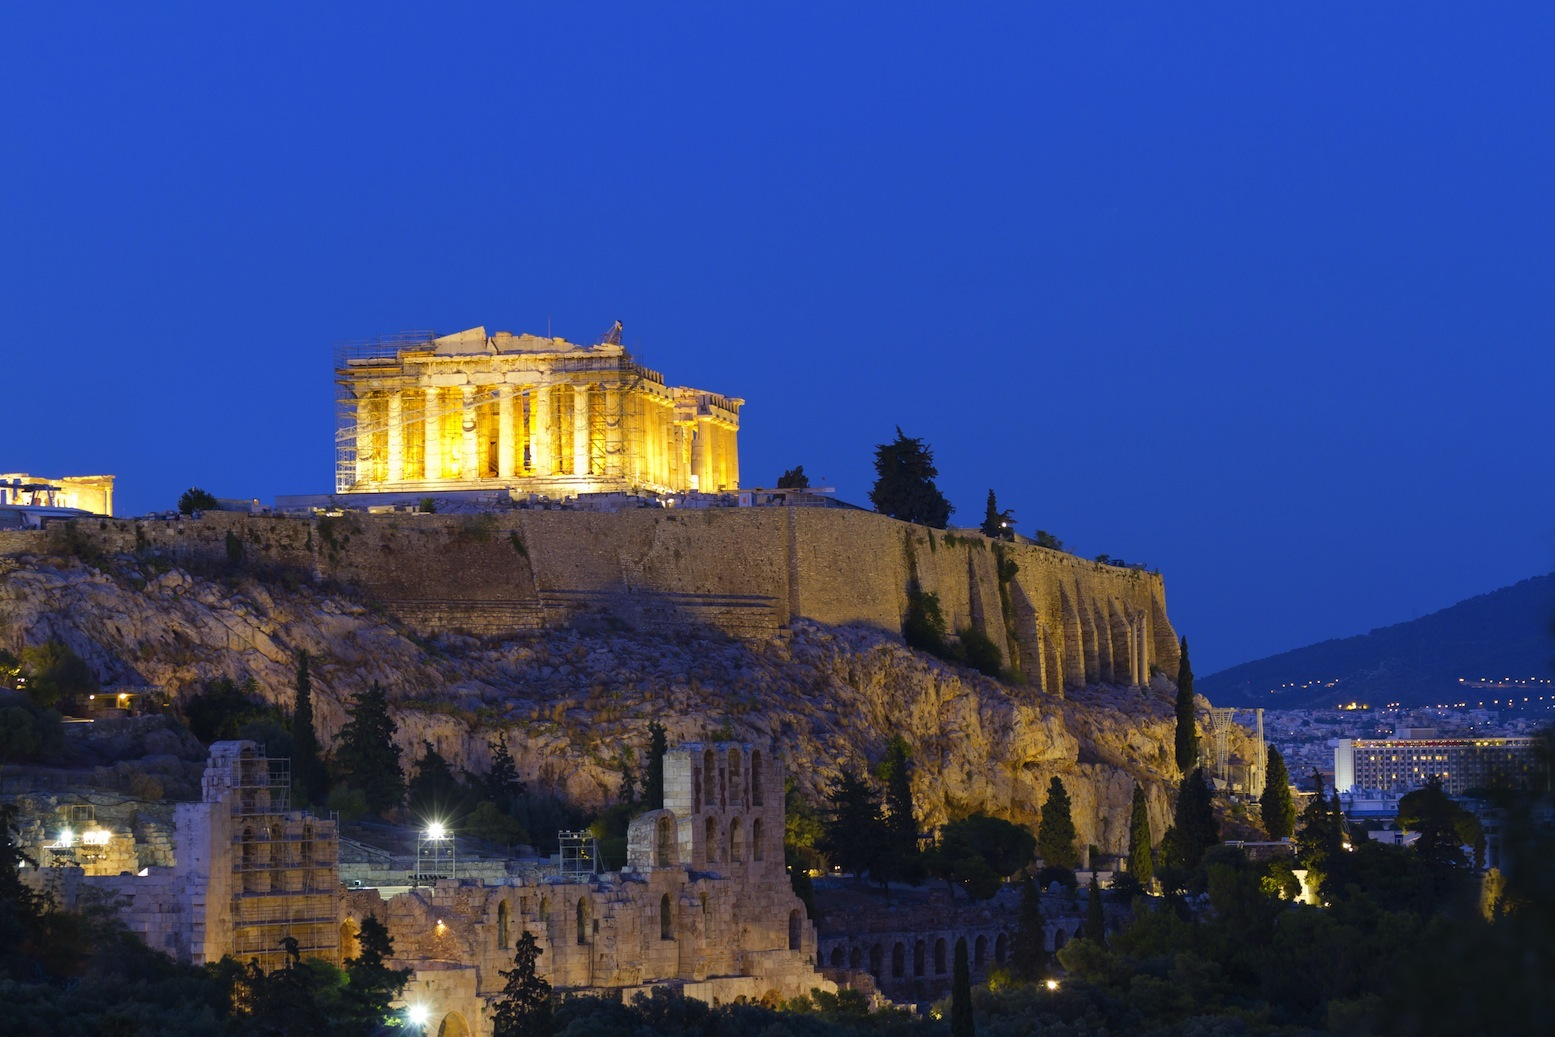 Acropolis Parthenon by night